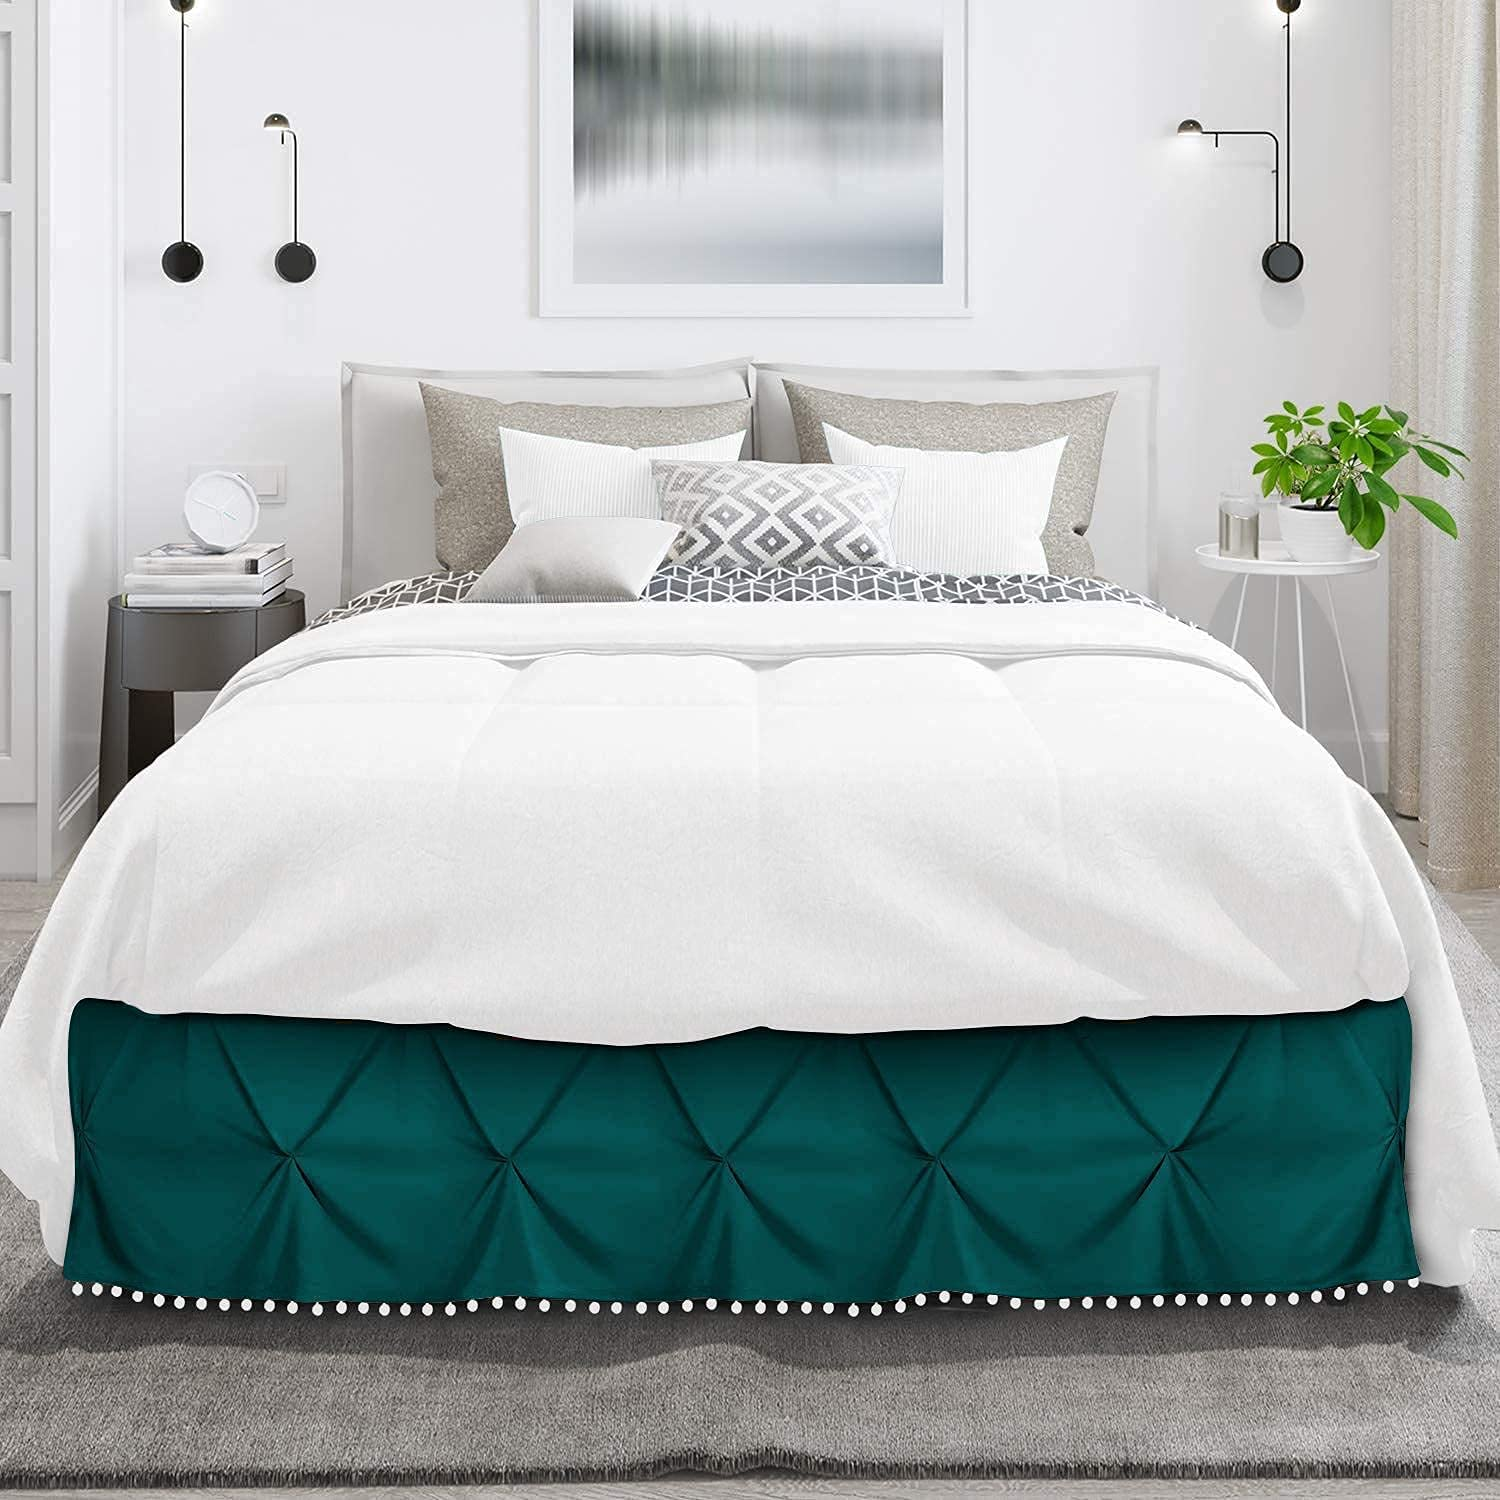 Idle Decor Pom Pinch Pleated 8 100% Egyptian Cotton All items free shipping Now free shipping BedSkirt